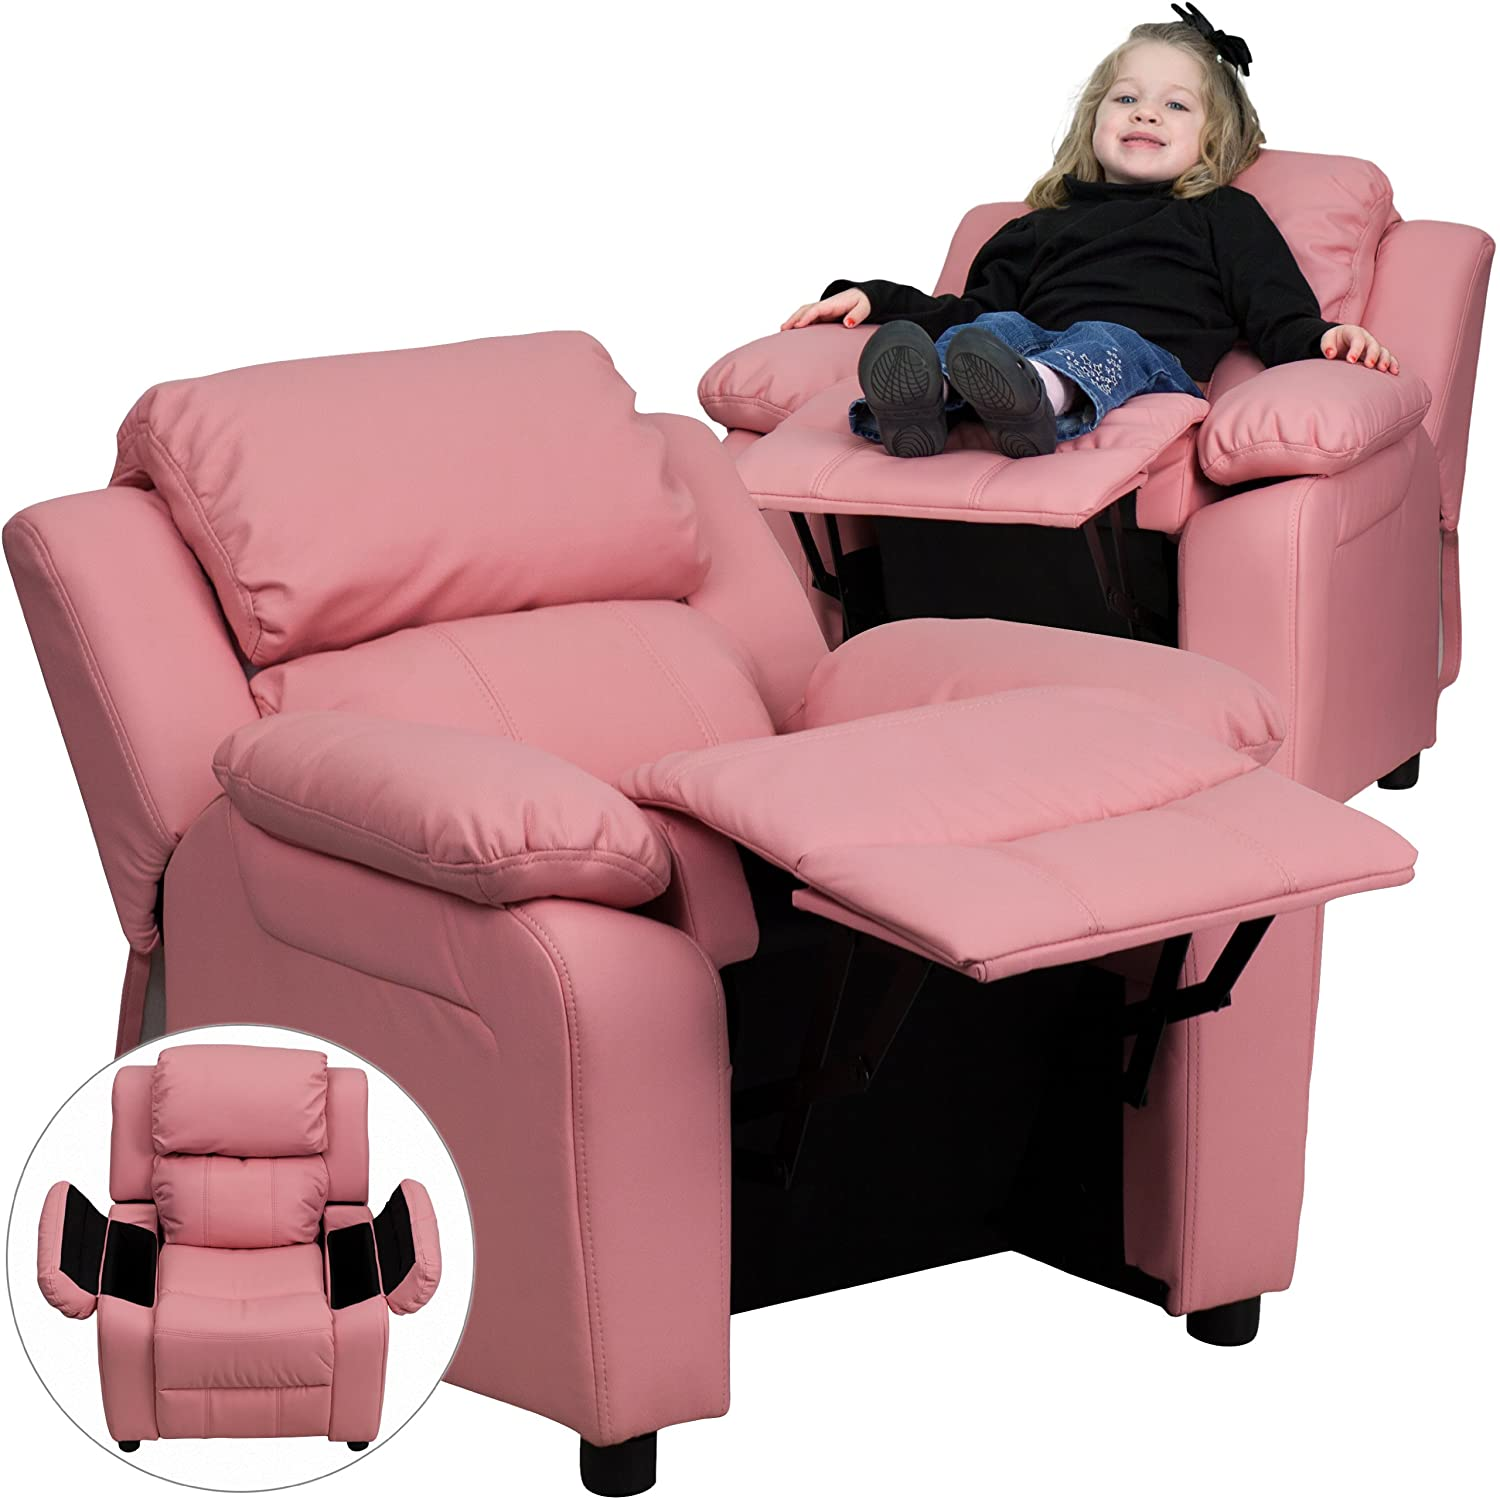 Amazon.com Flash Furniture Deluxe Padded Contemporary Pink Vinyl Kids Recliner with Storage Arms Kitchen u0026 Dining  sc 1 st  Amazon.com : baby recliner - islam-shia.org